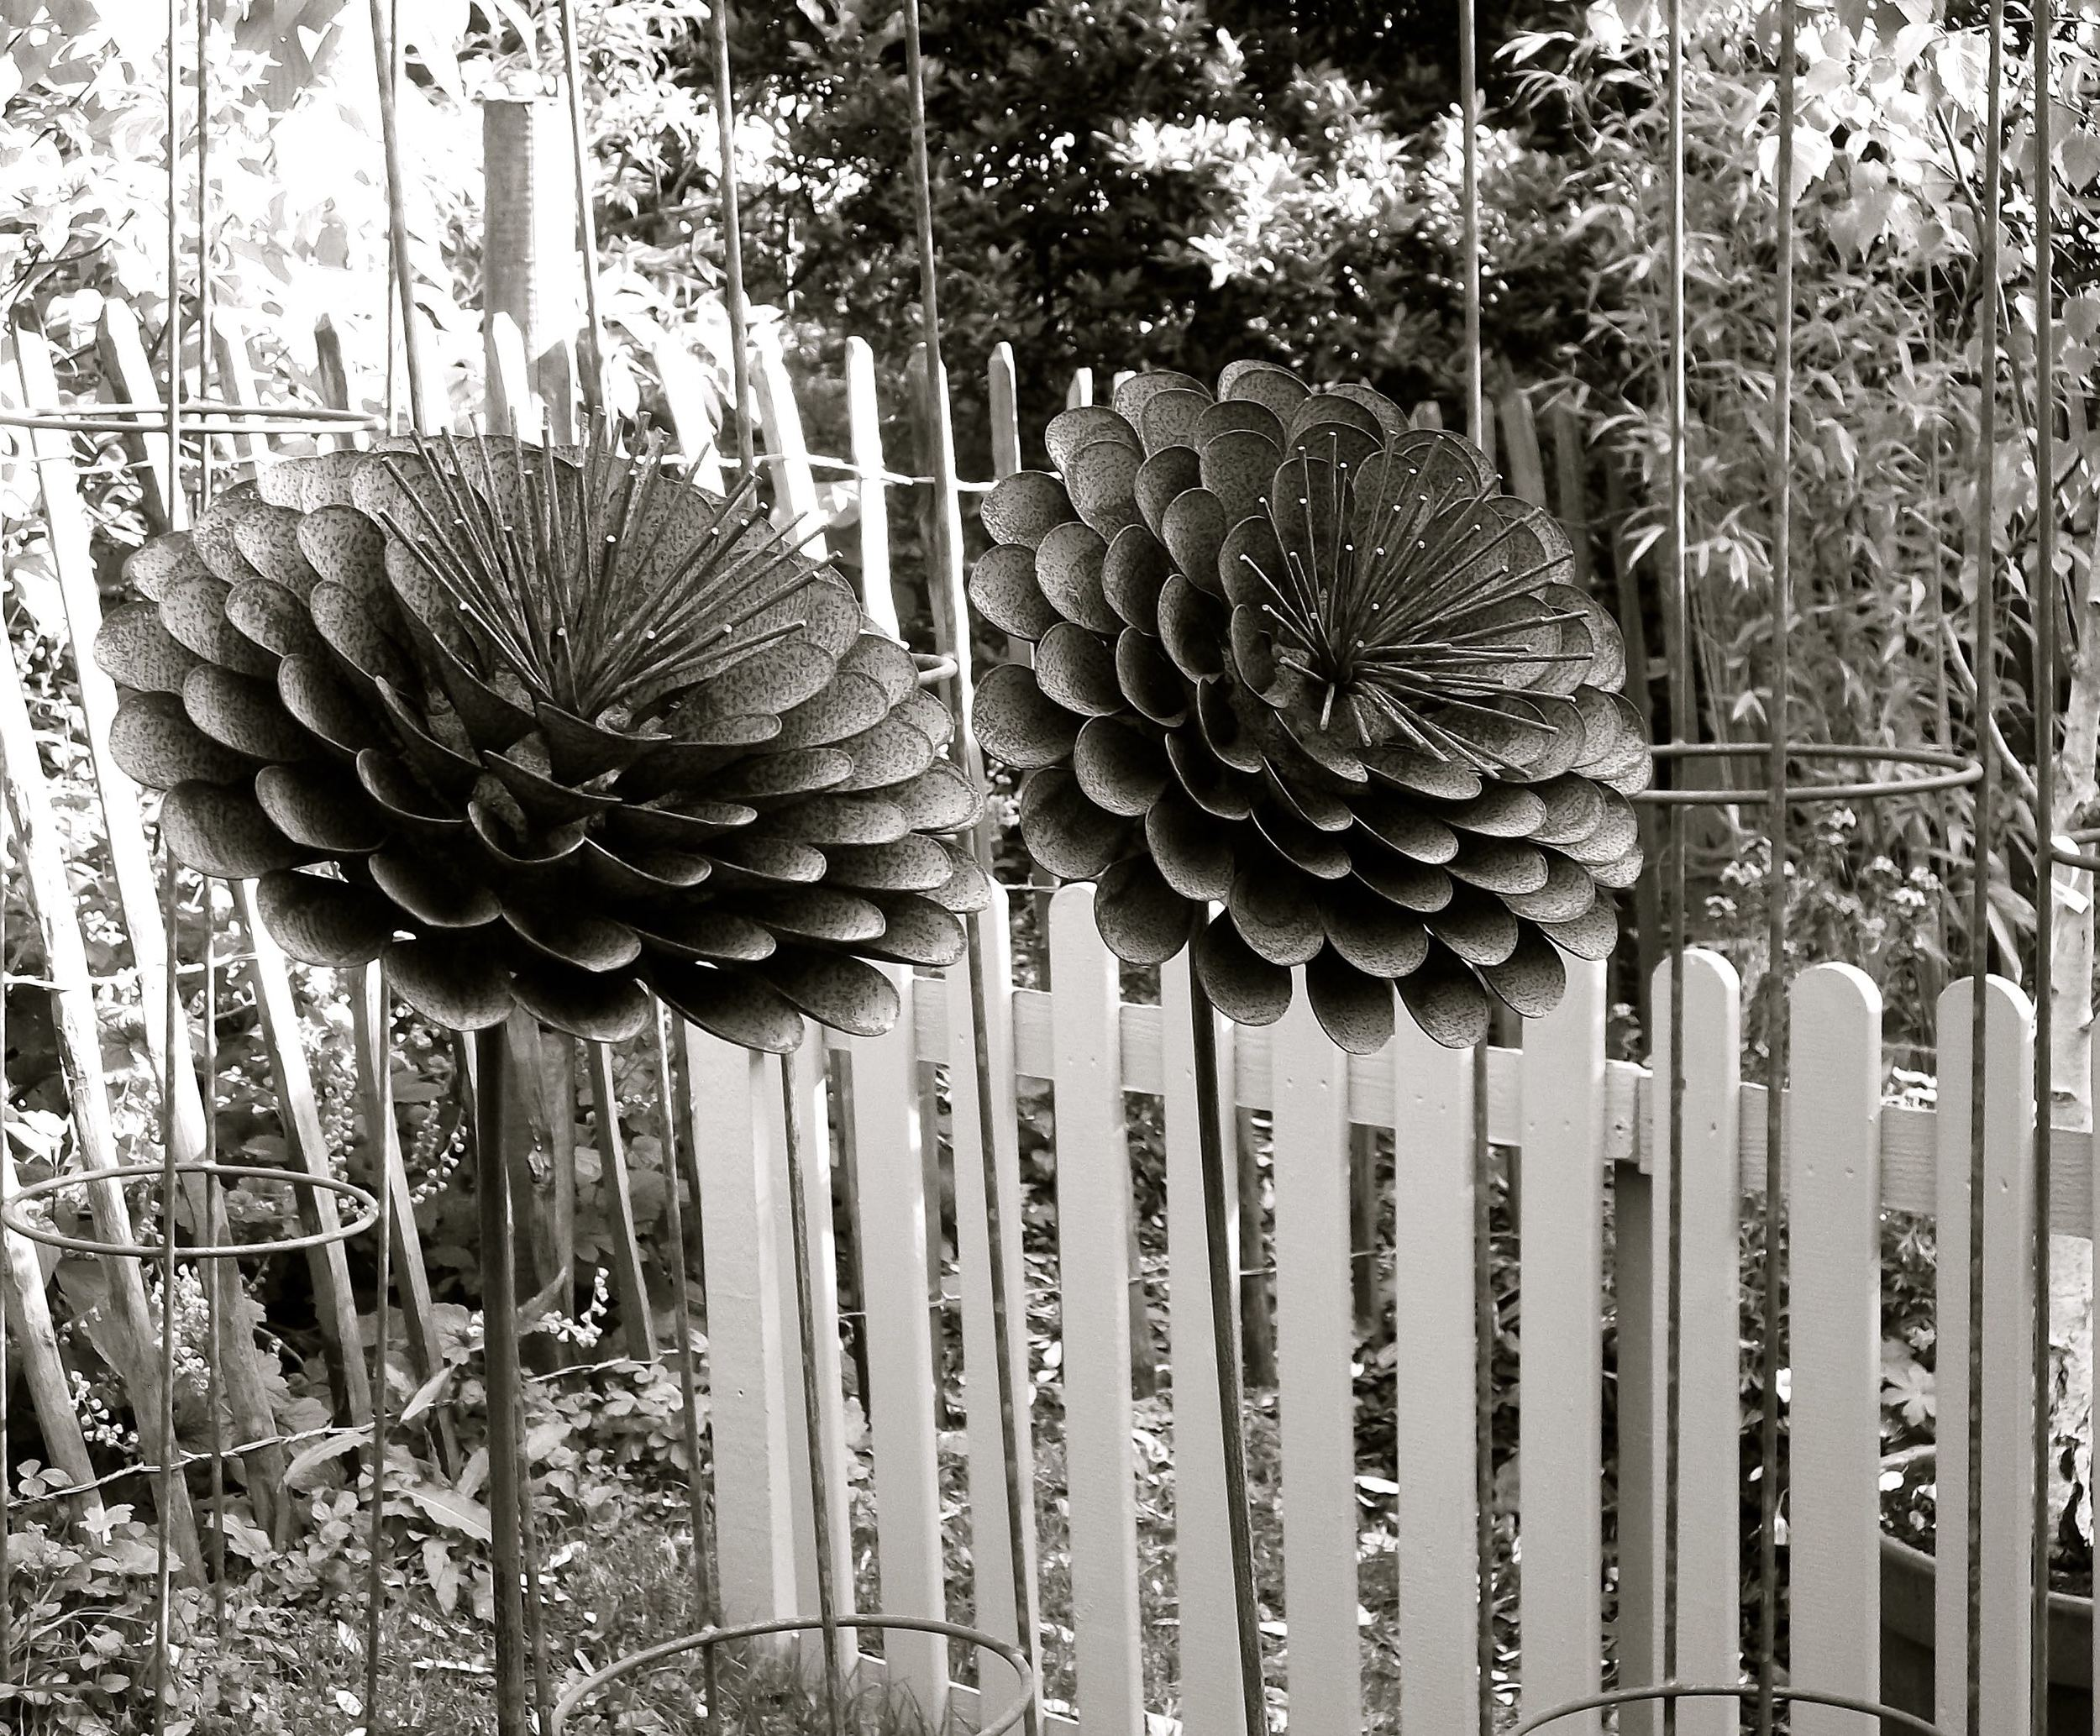 LARGE IRON FLOWER ORNAMENTS